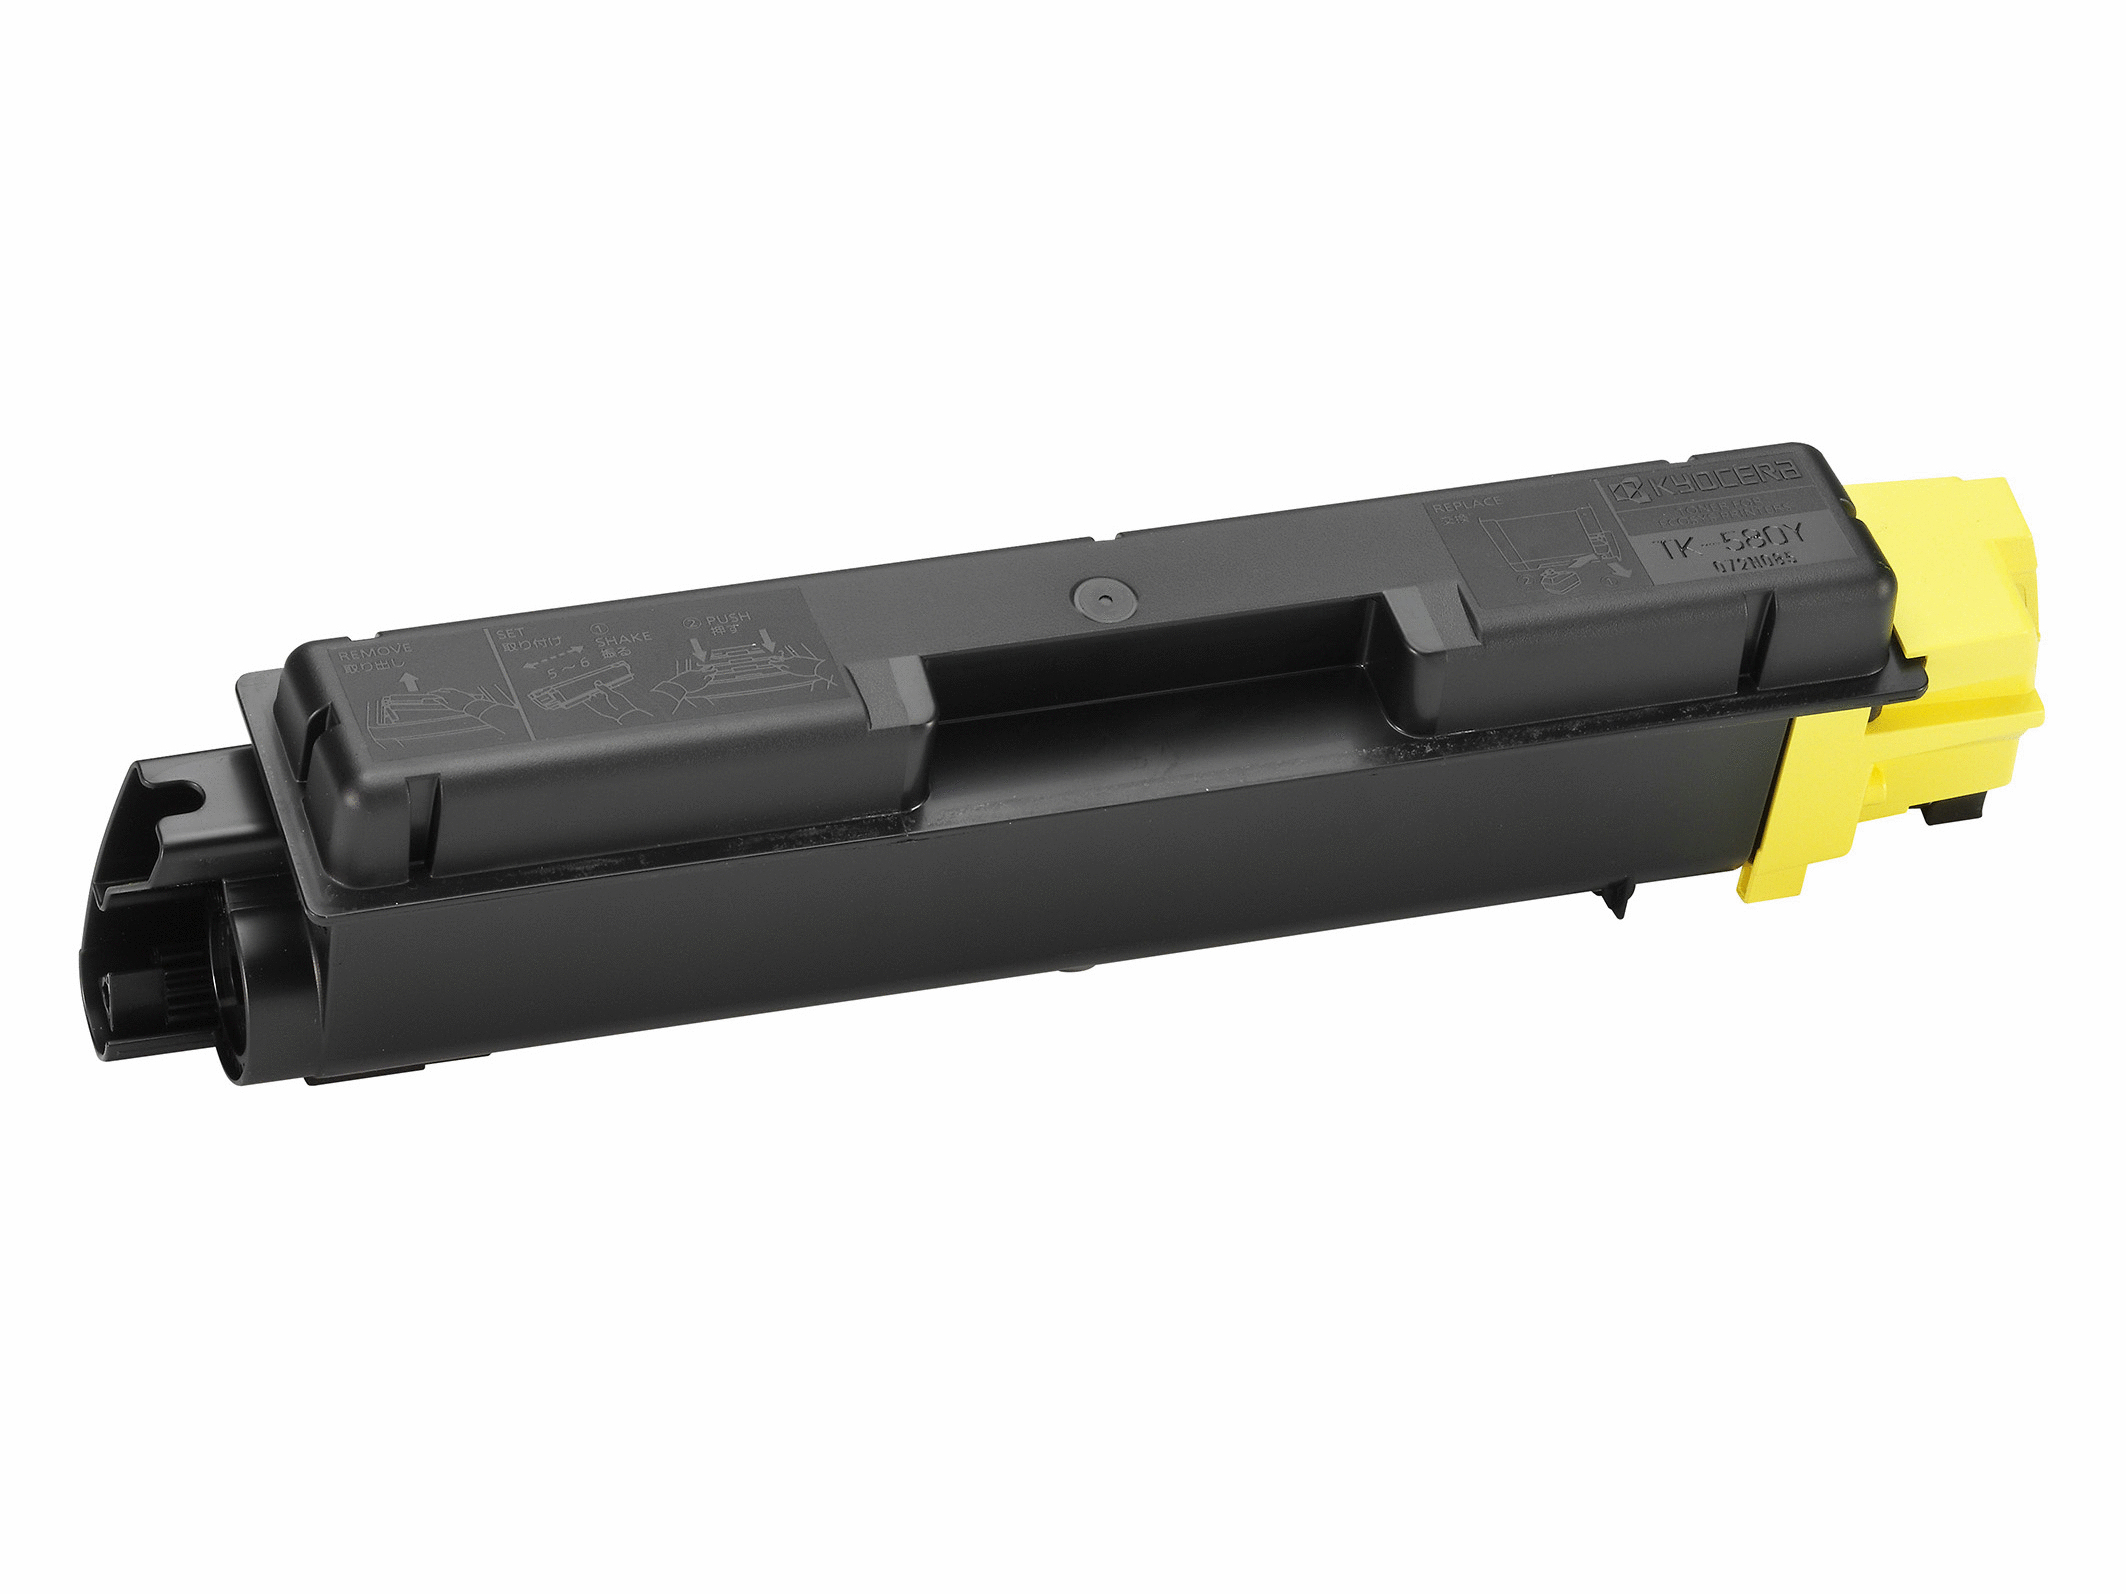 Remanufactured Kyocera TK580Y Yellow Toner Cartridge 2.8k TK580Y - rem01